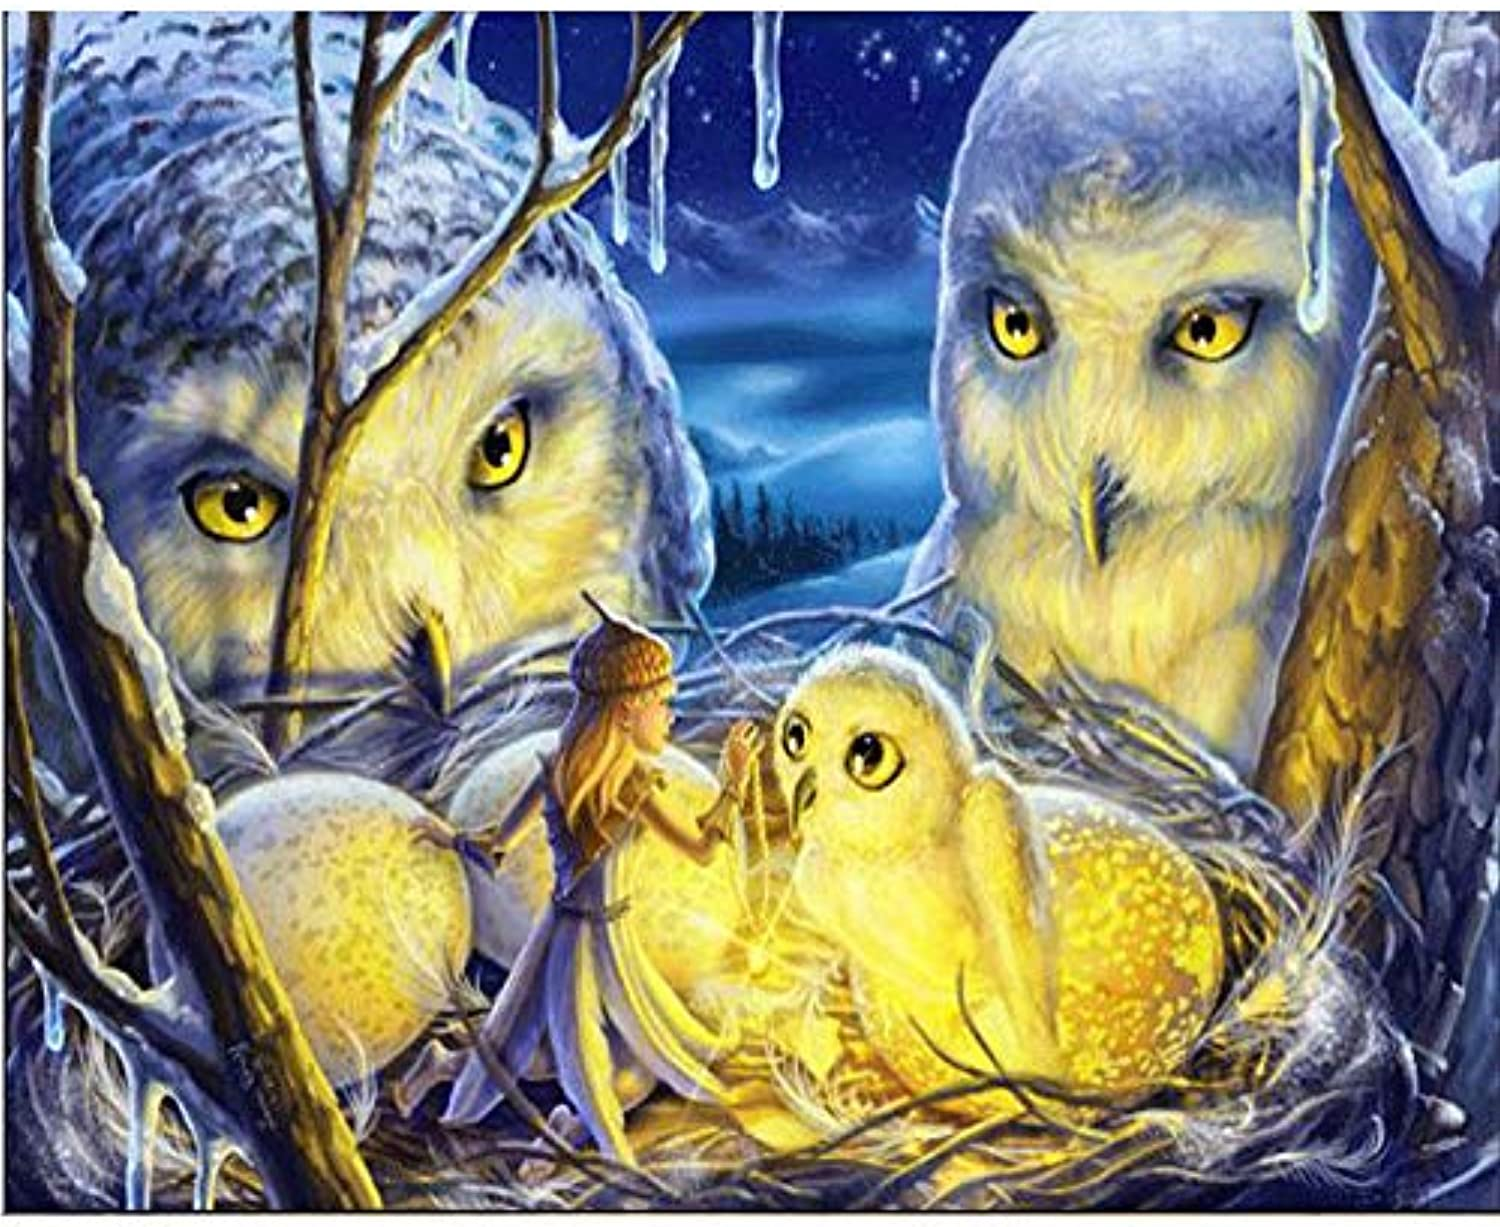 DIY Oil Paint by Number Kit for Adults Beginner 16x20 Inch - Winter Owls,Drawing with Brushes Living Room Decor Decorations Gifts (Framed)